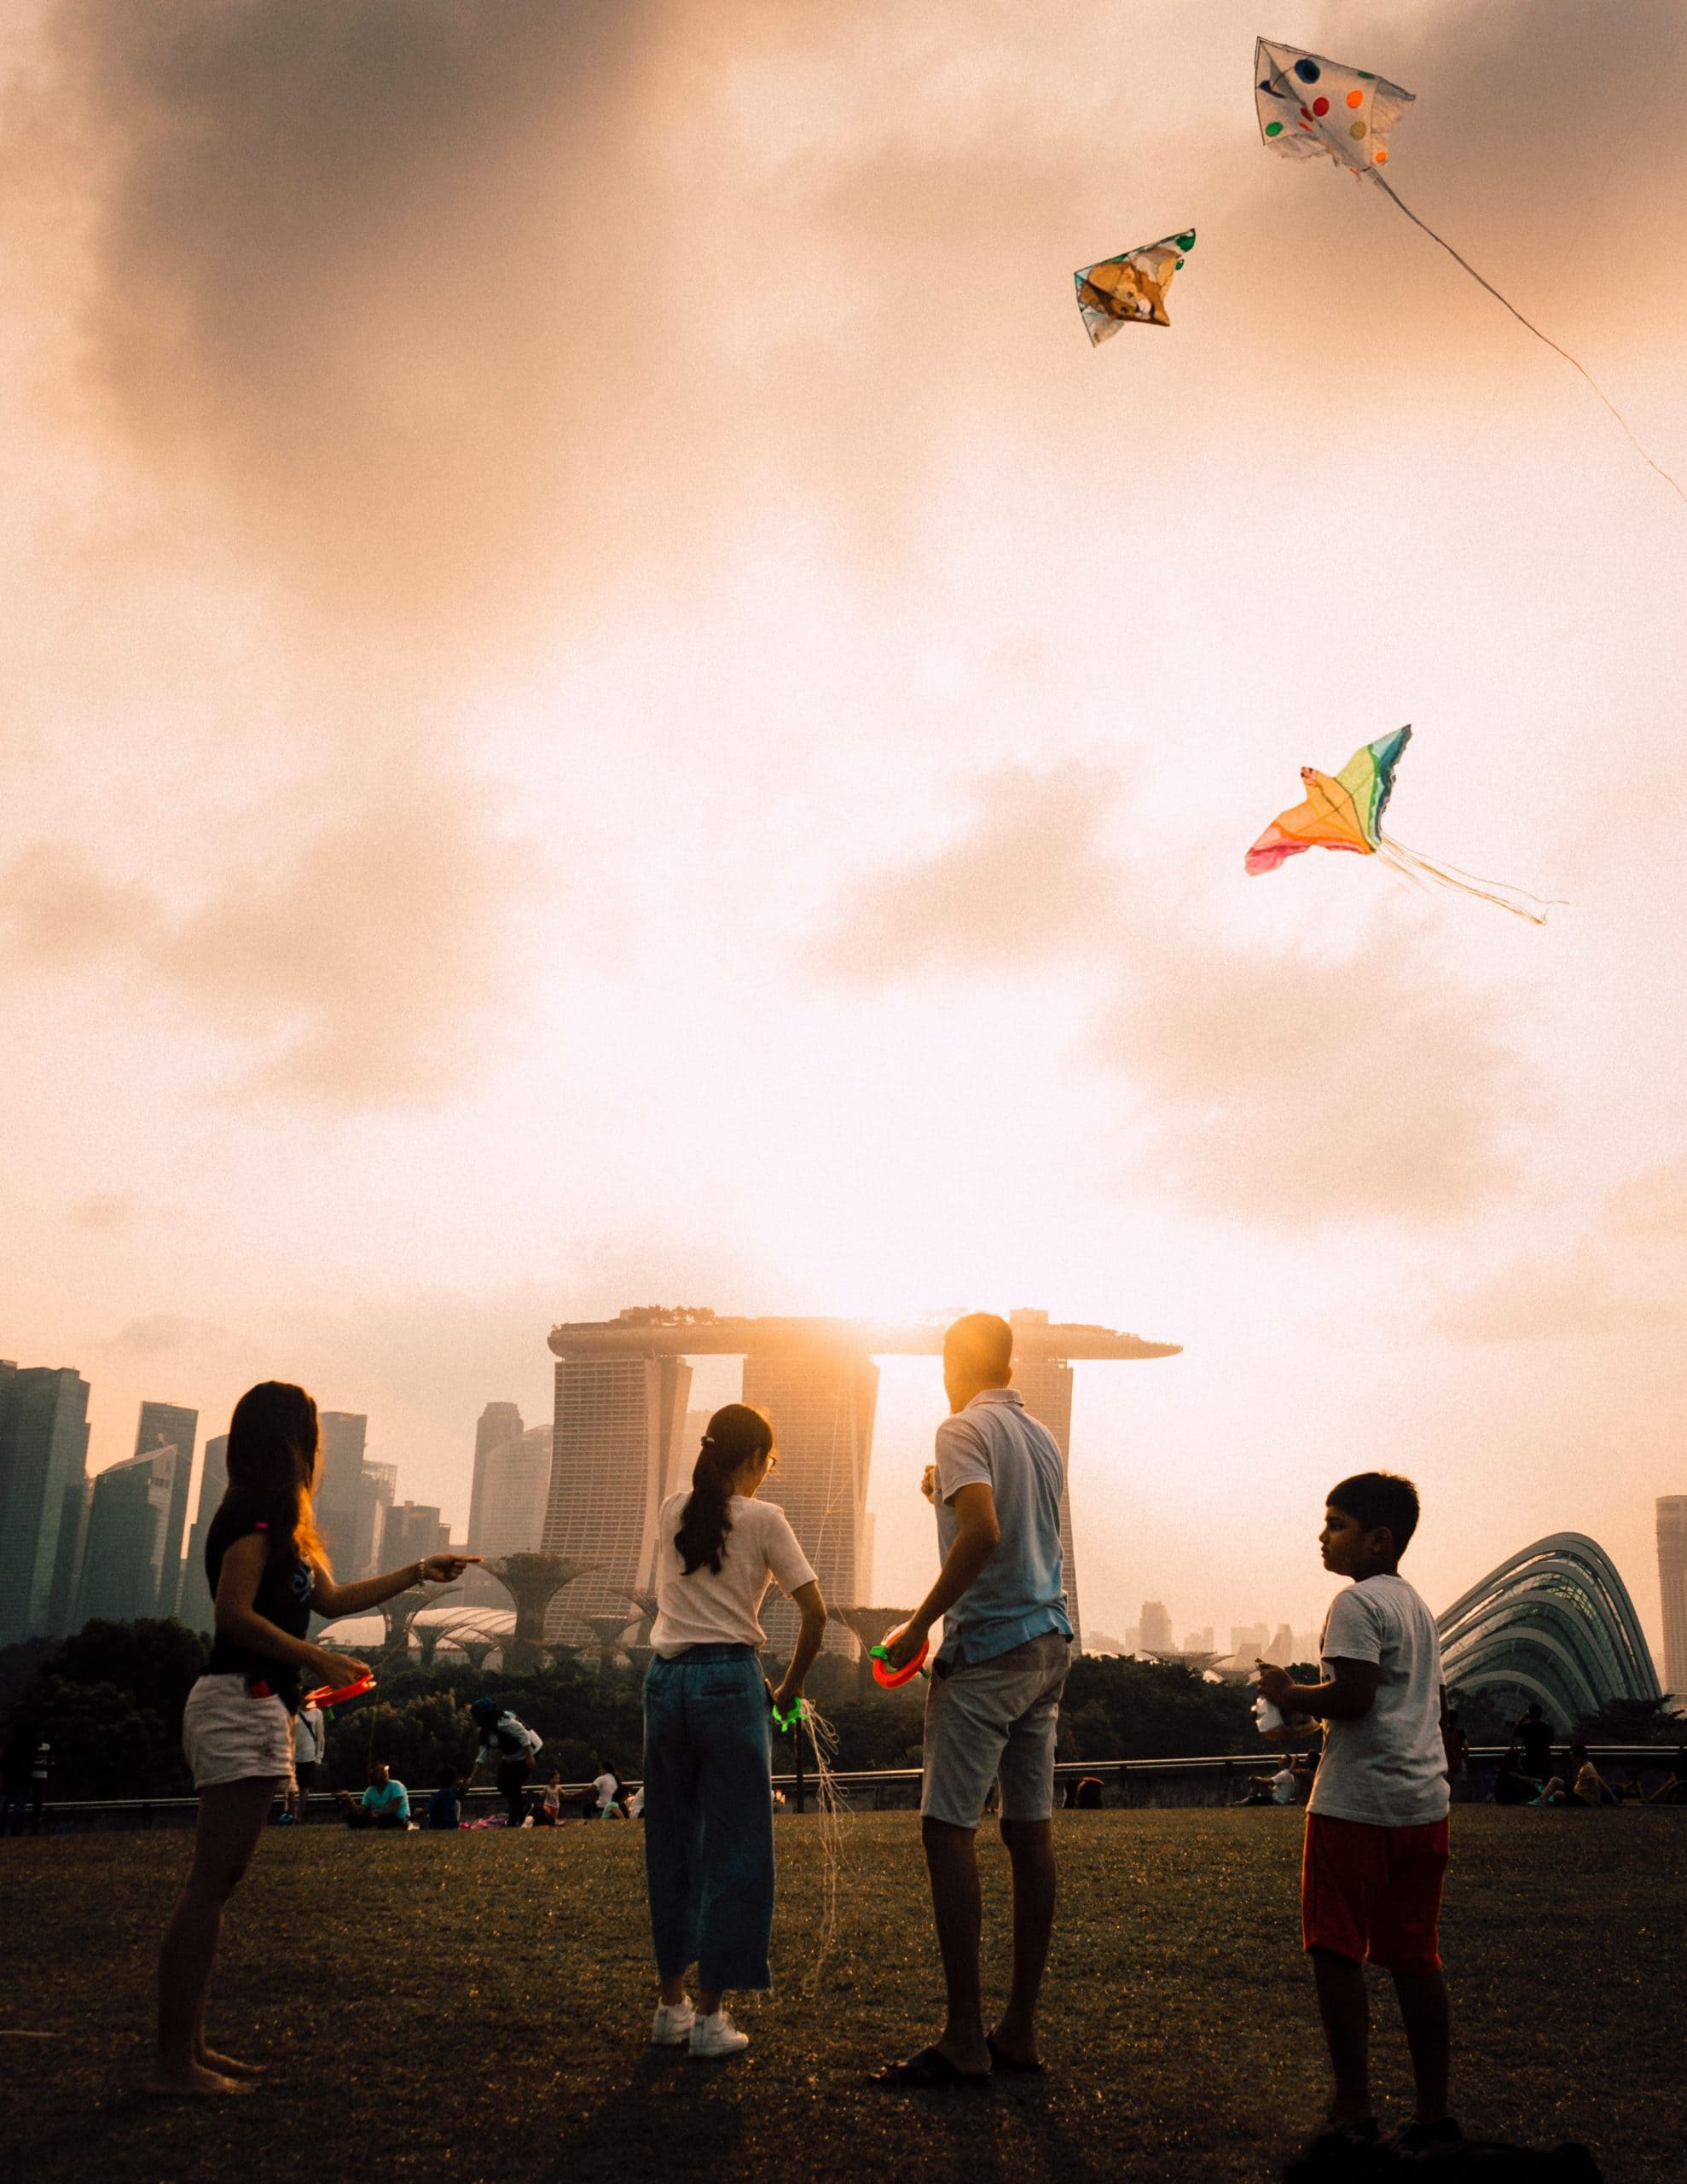 Is Singapore a Good Country to Raise Your Kids In?